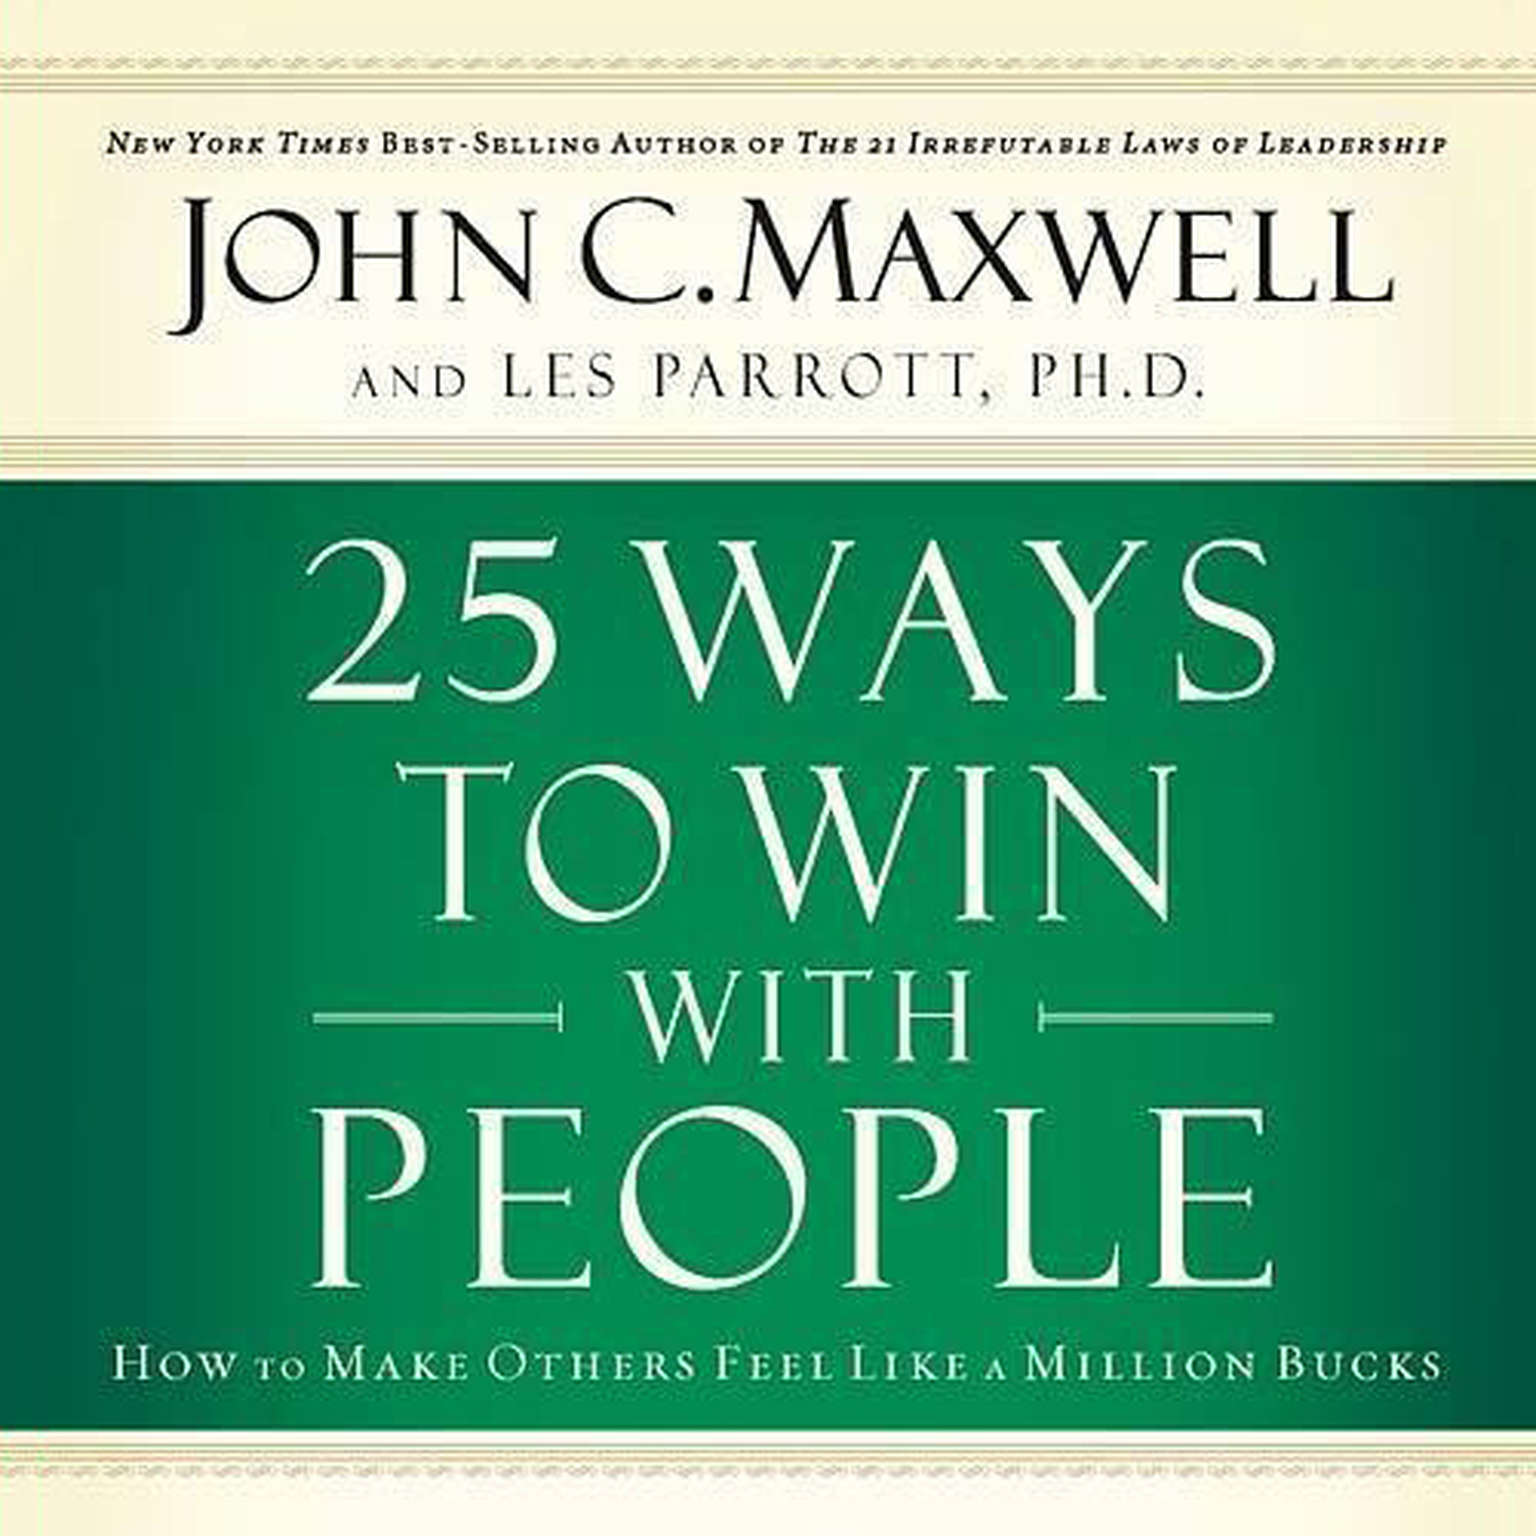 25 Ways To Win With People: How To Make Others Feel Like A Million Bucks - John C. Maxwell, Les Parrott - reviews, quotes, summary